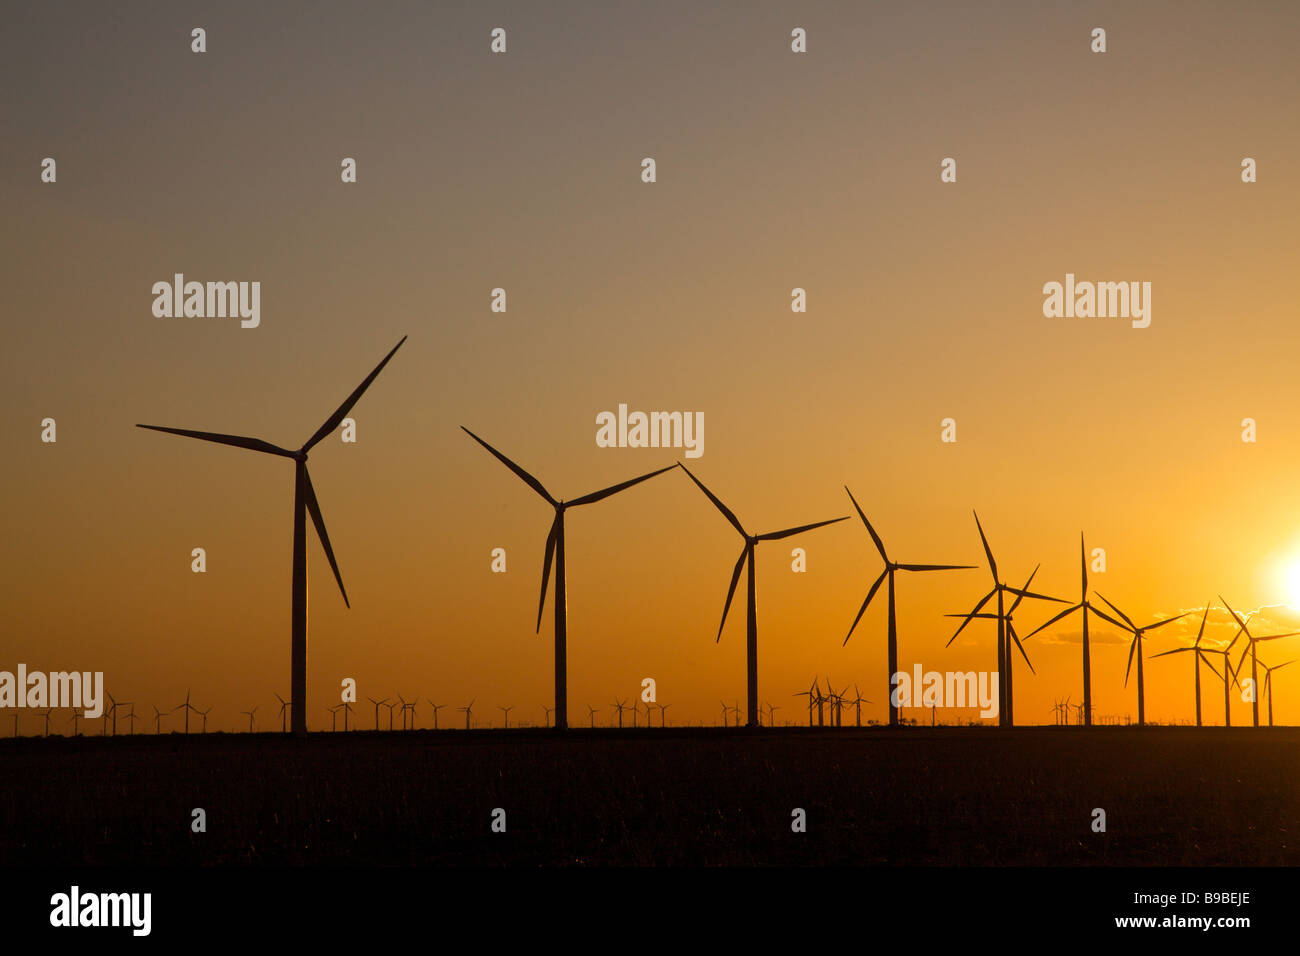 Wind turbines generating electricity at Horse Hollow Wind Farm Nolan Texas at sunset. - Stock Image